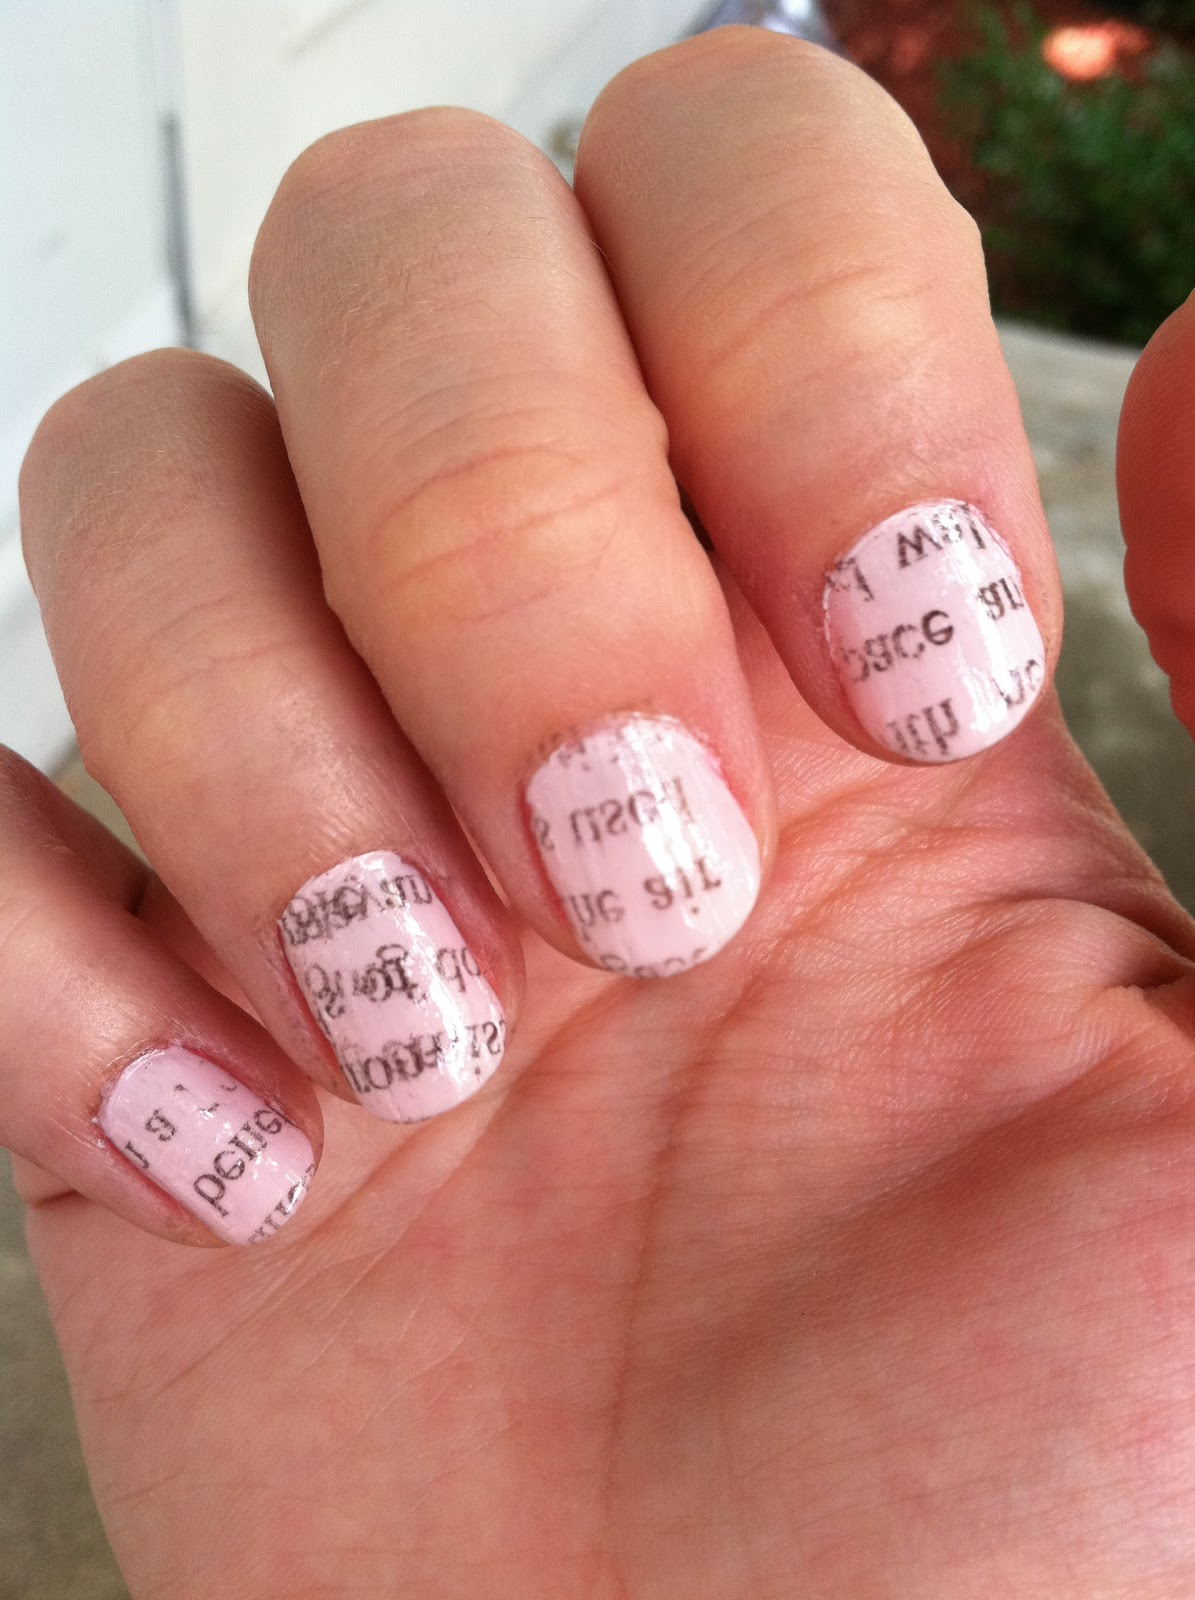 The Bees Knees DIY Newspaper Manicure